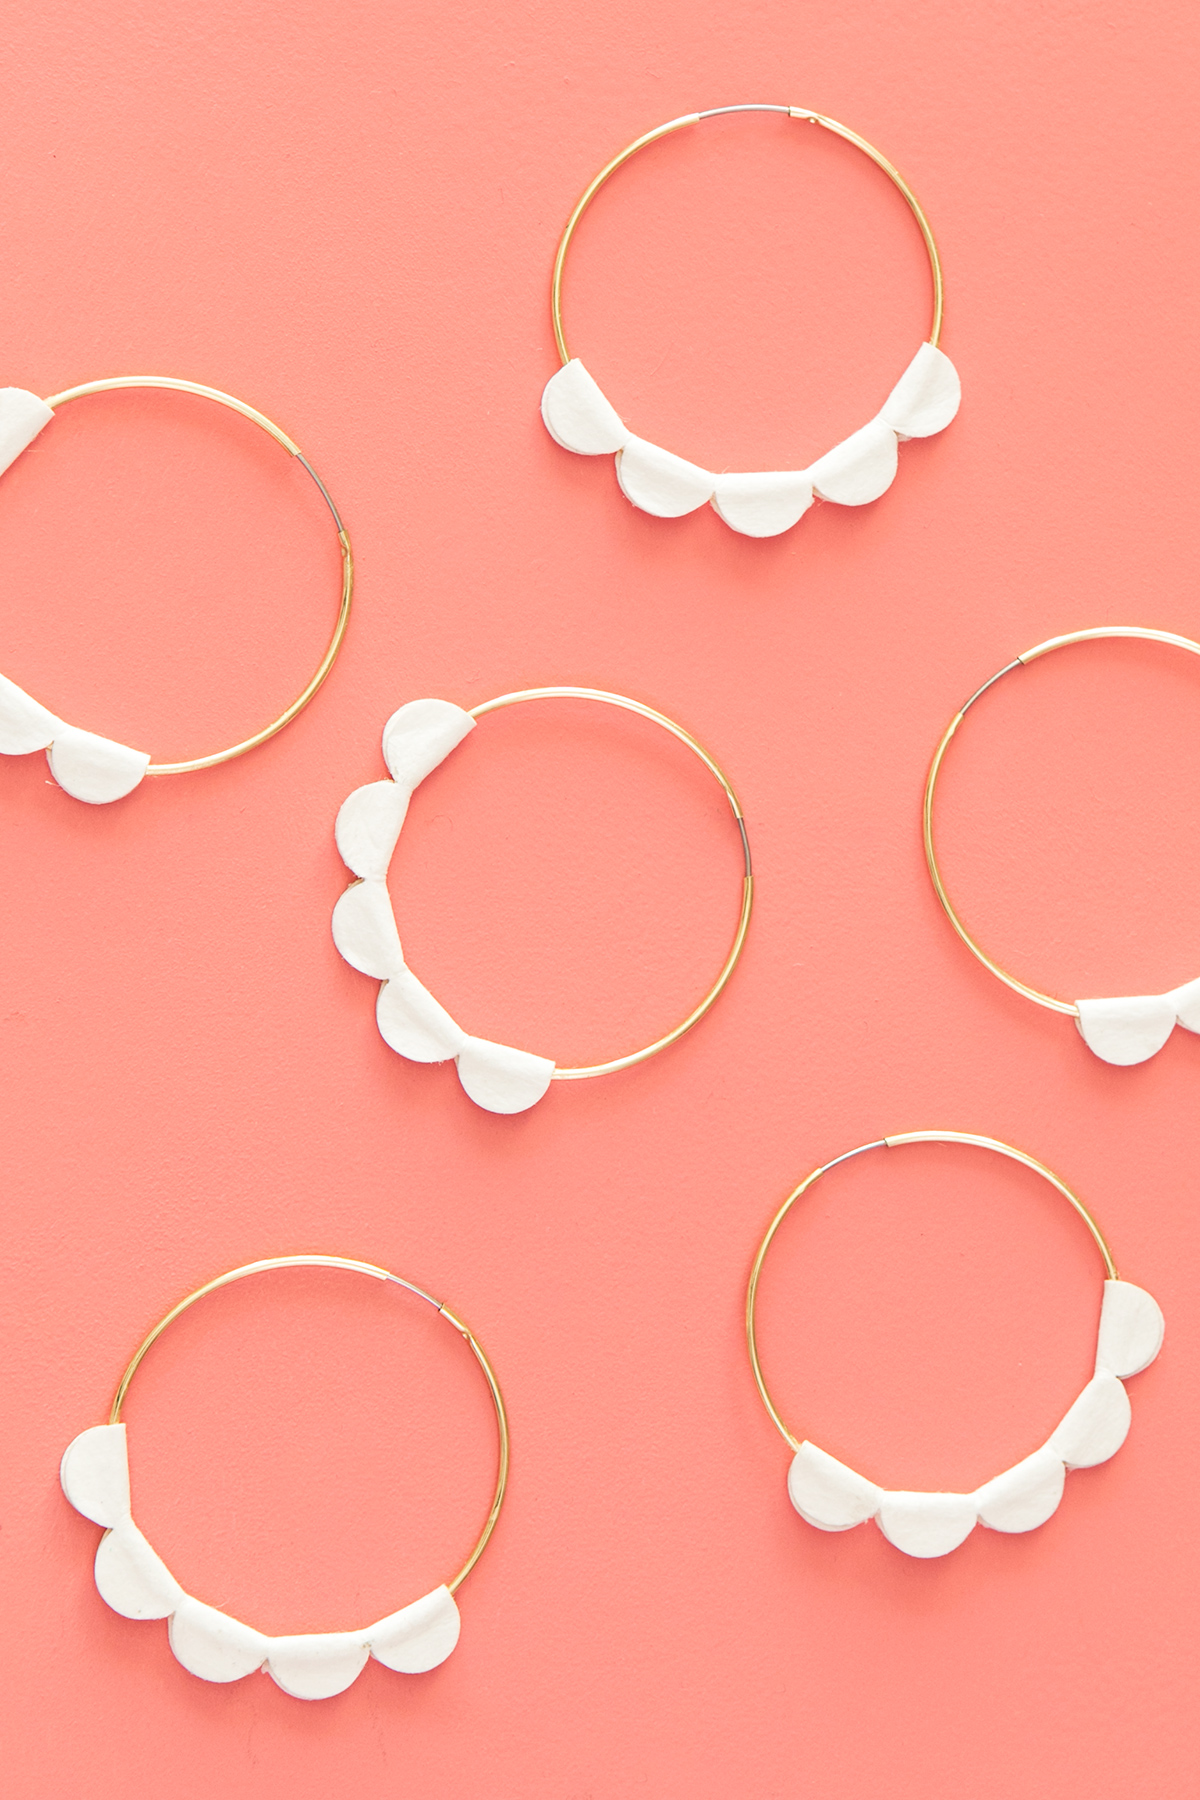 Learn how to create your own scalloped statement hoop earrings in minutes using a Silhouette Cameo or Portrait! Click through to watch video tutorial and download the cut files.